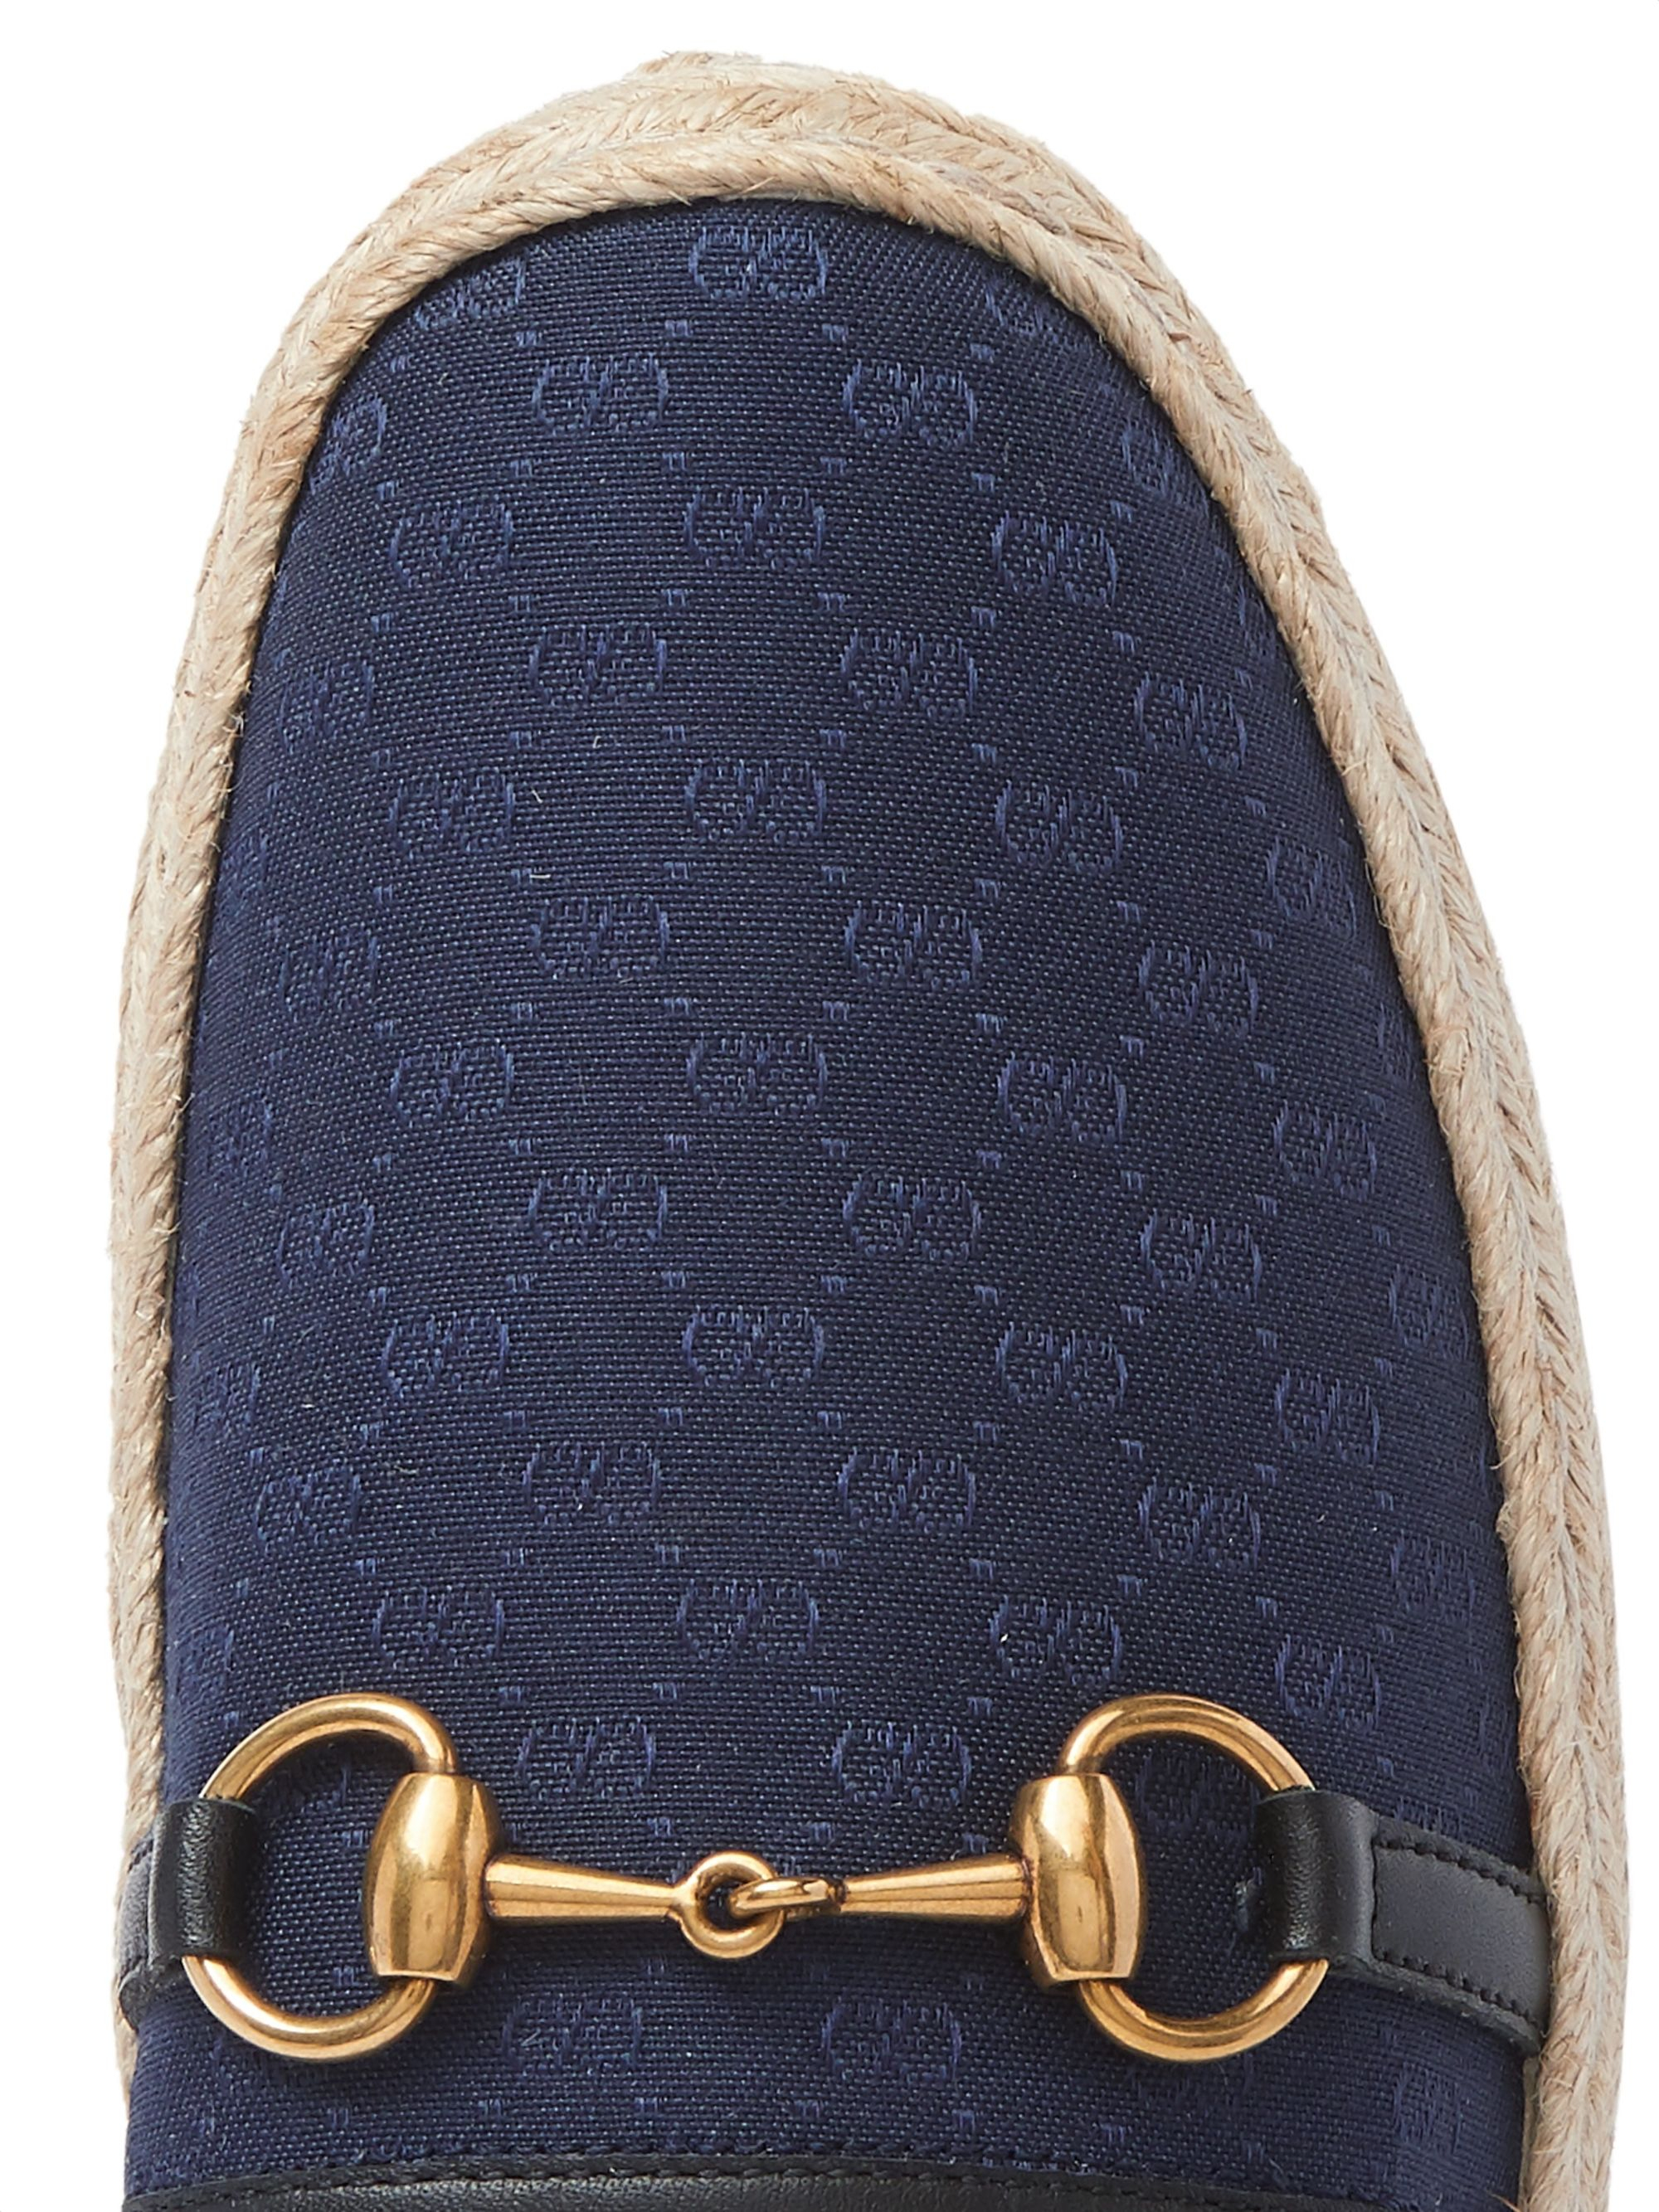 Gucci Horsebit Leather-Trimmed Logo-Jacquard Canvas Espadrilles